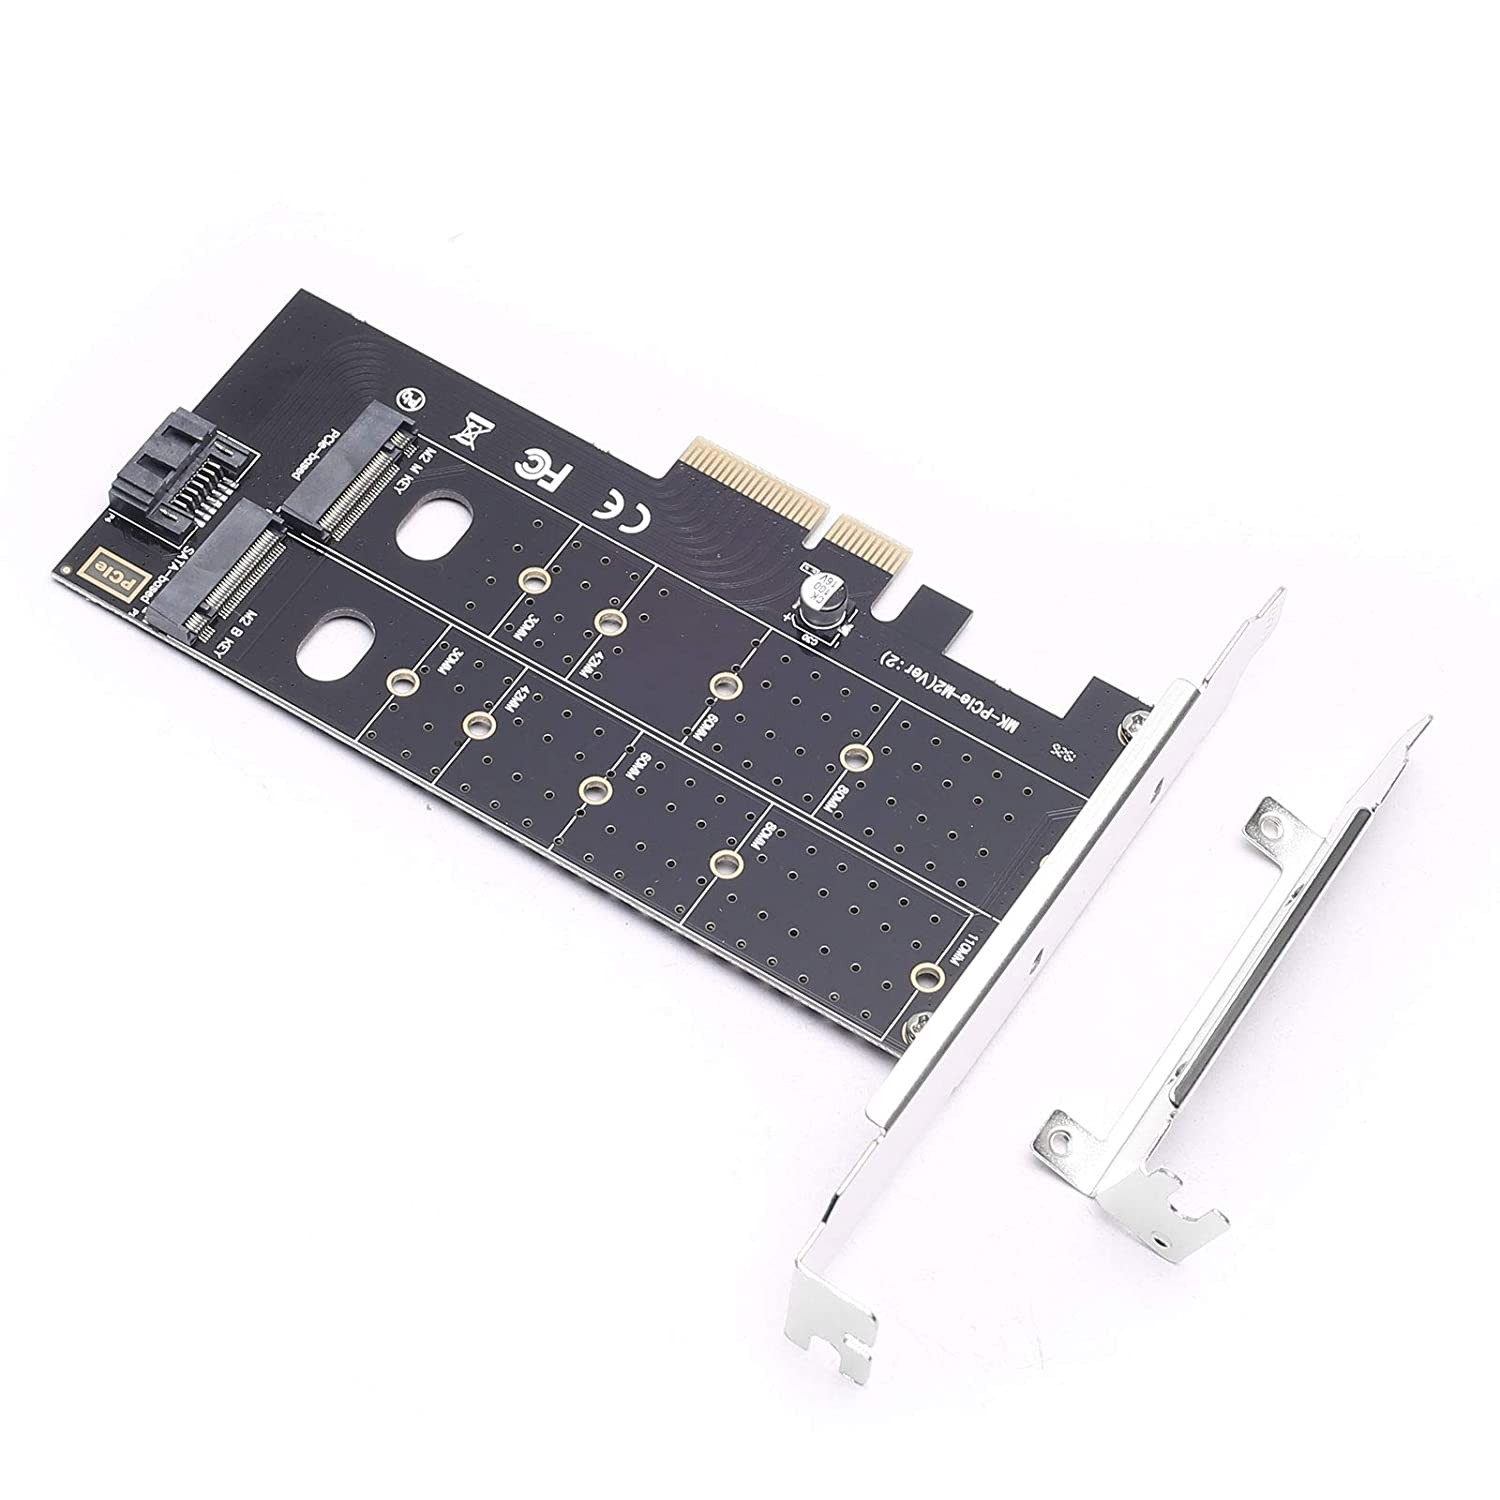 DEVMO M.2 NGFF to Desktop PCIe x4 x8 x16 NVMe SATA Dual SSD PCI Express Adapter Card